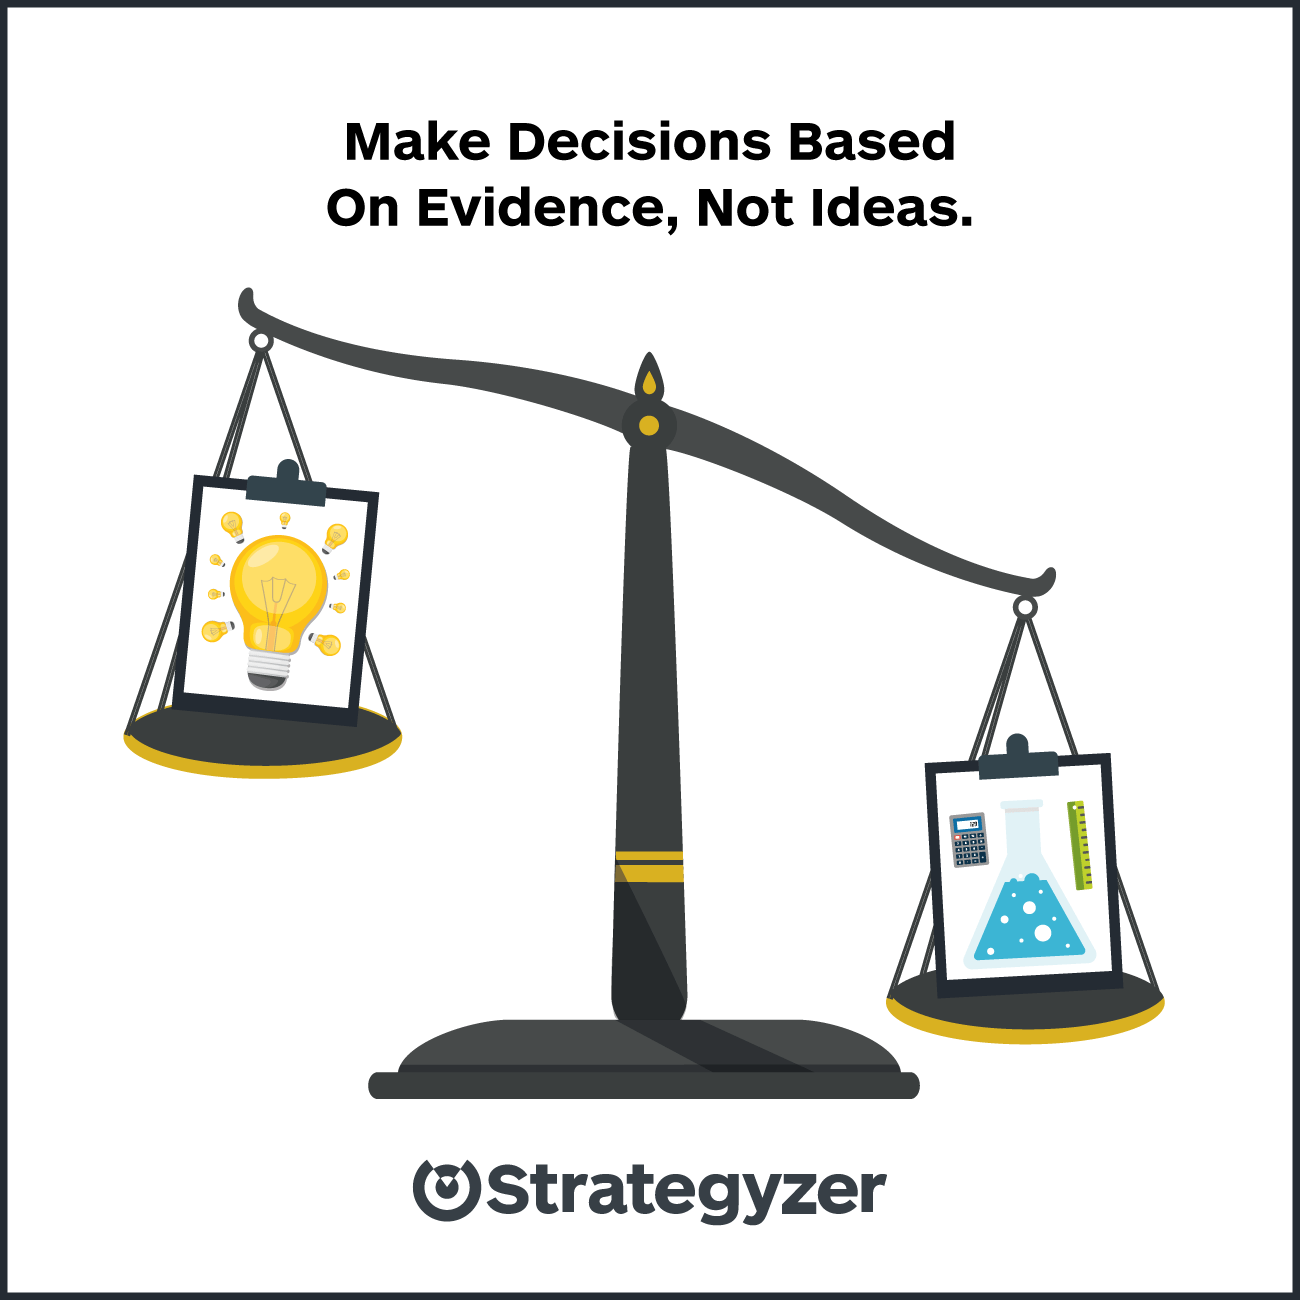 Innovation Teams Confident Innovation Teams Are Armed With Hard Evidence Strategyzer